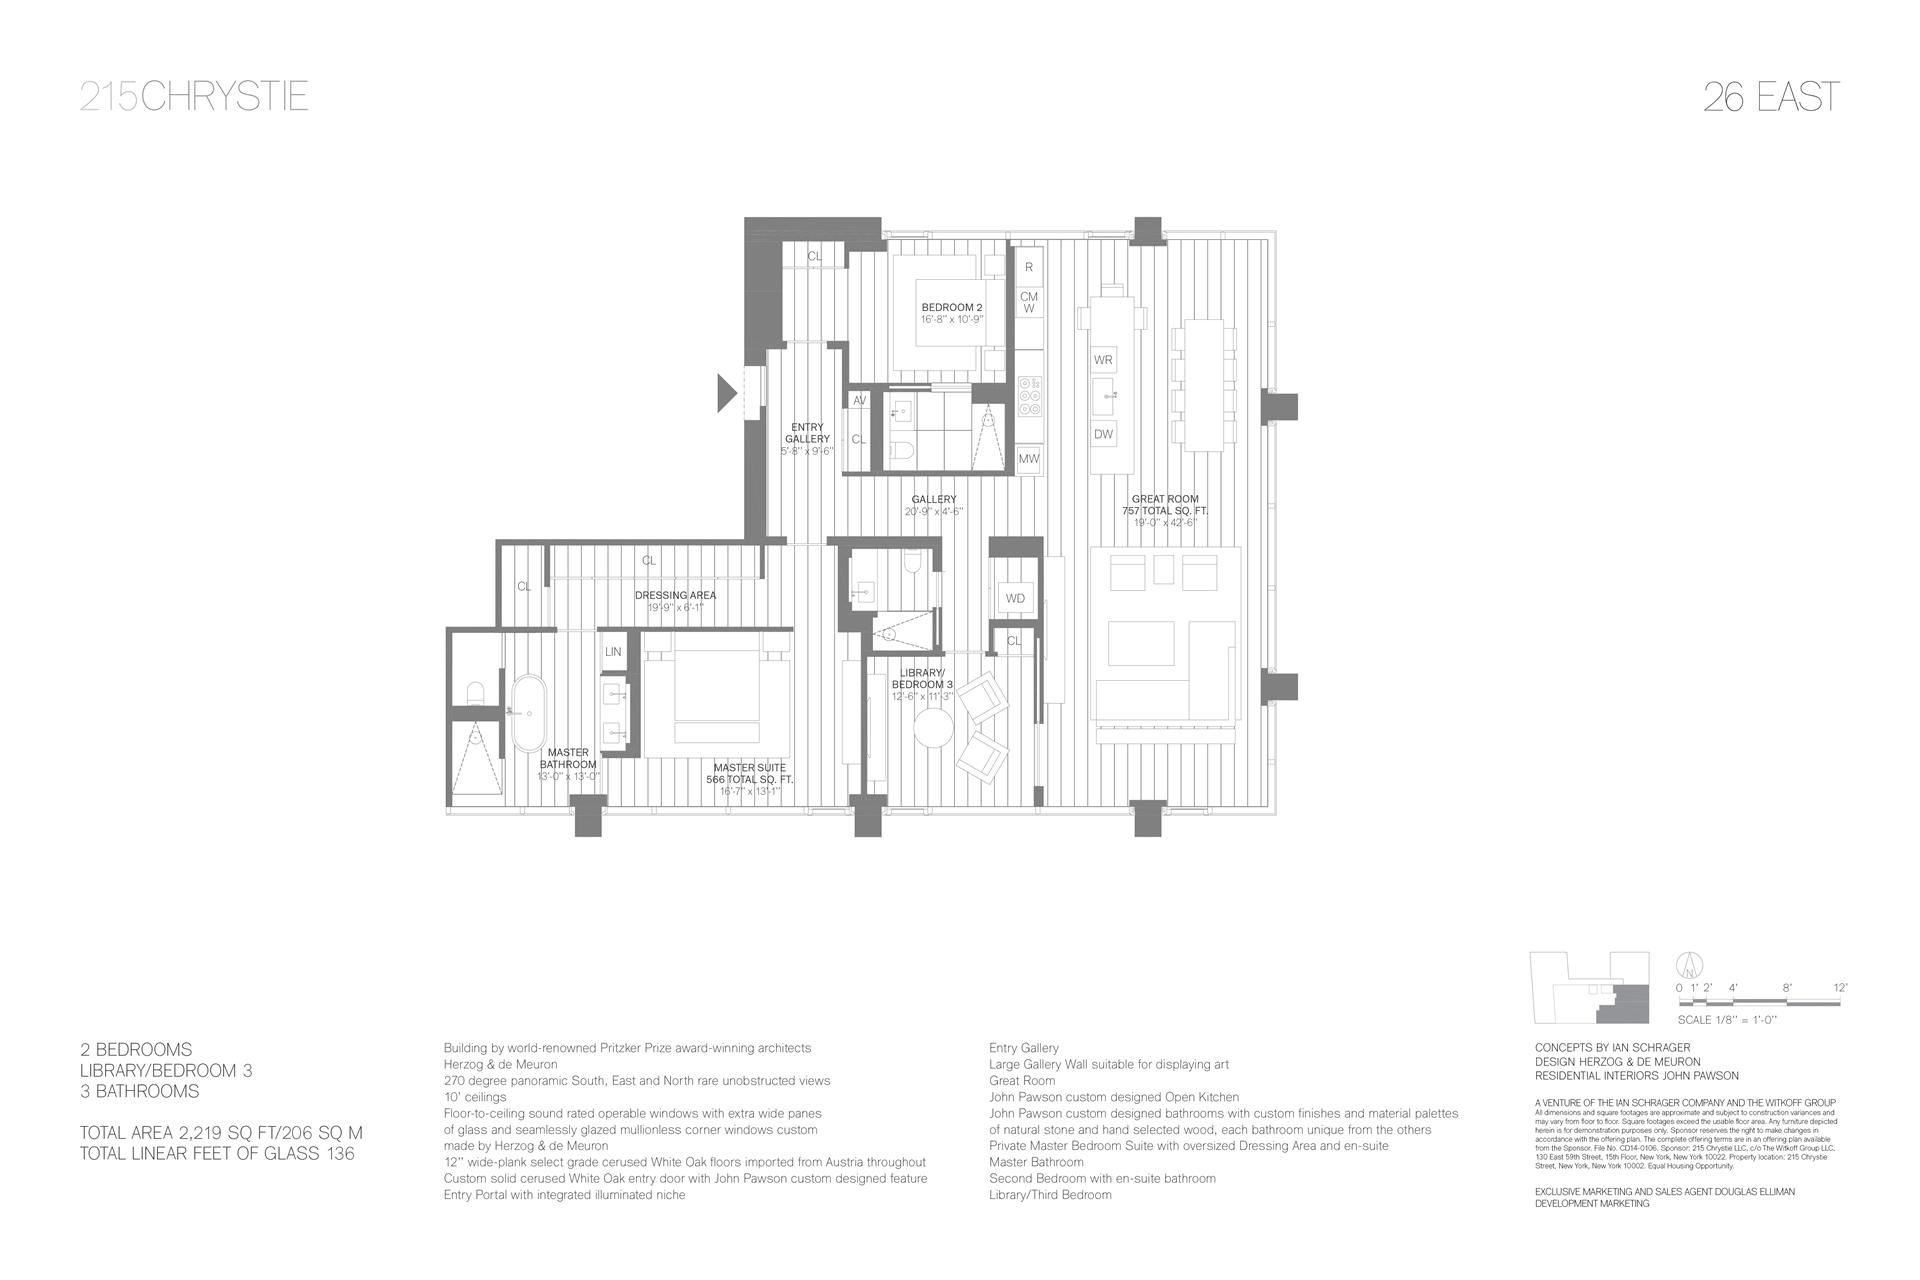 Floor plan of 215 Chrystie St, 26EAST - Lower East Side, New York